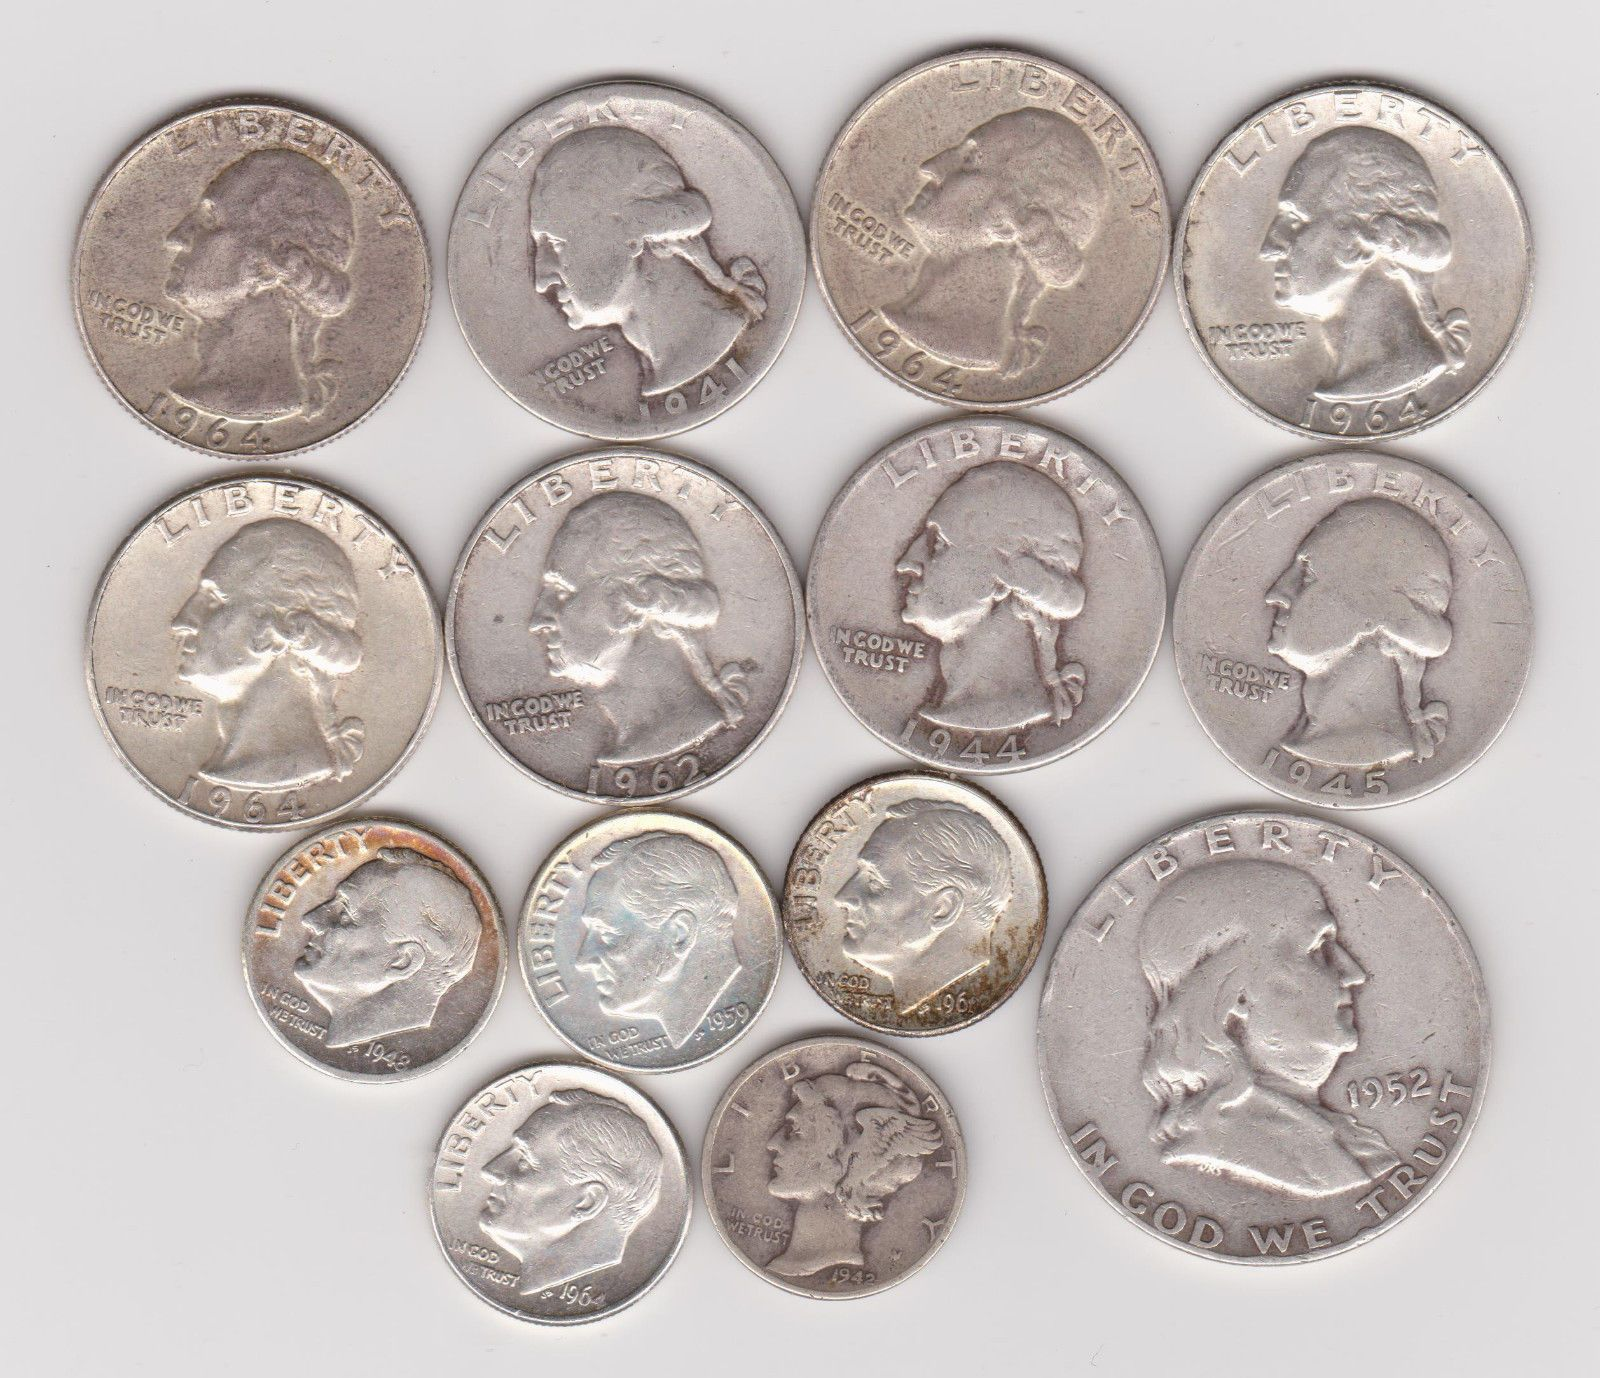 USA JUNK SILVER COINS 1964 OR EARLIER 90% SILVER QUARTERS